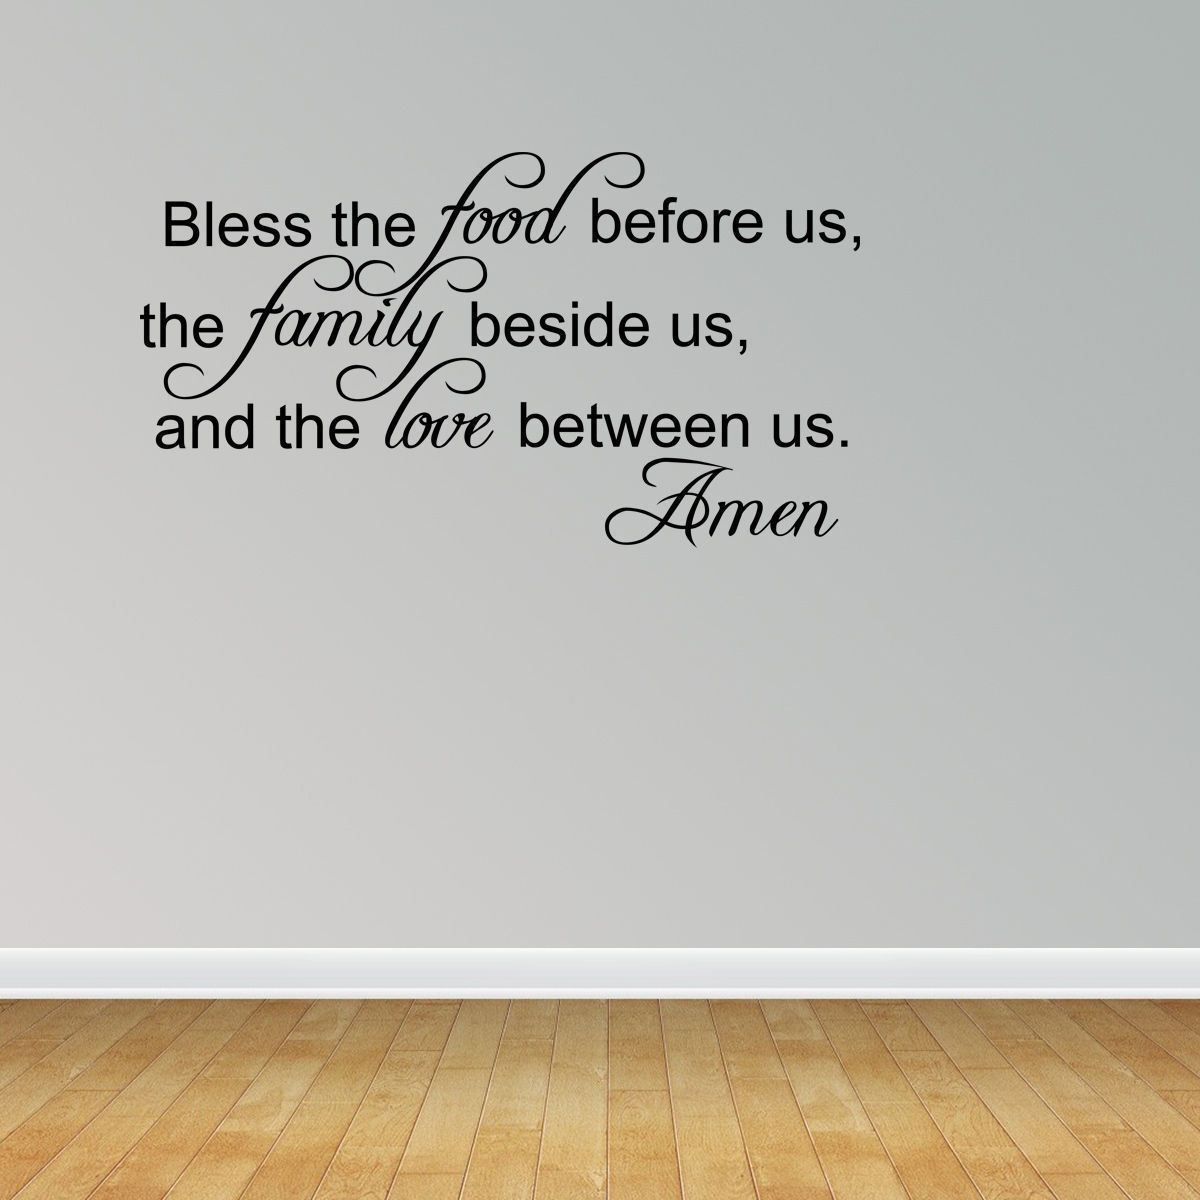 bless the food before us dining room wall decal family wall art bless the food before us dining room wall decal family wall art quote kitchen 9 99